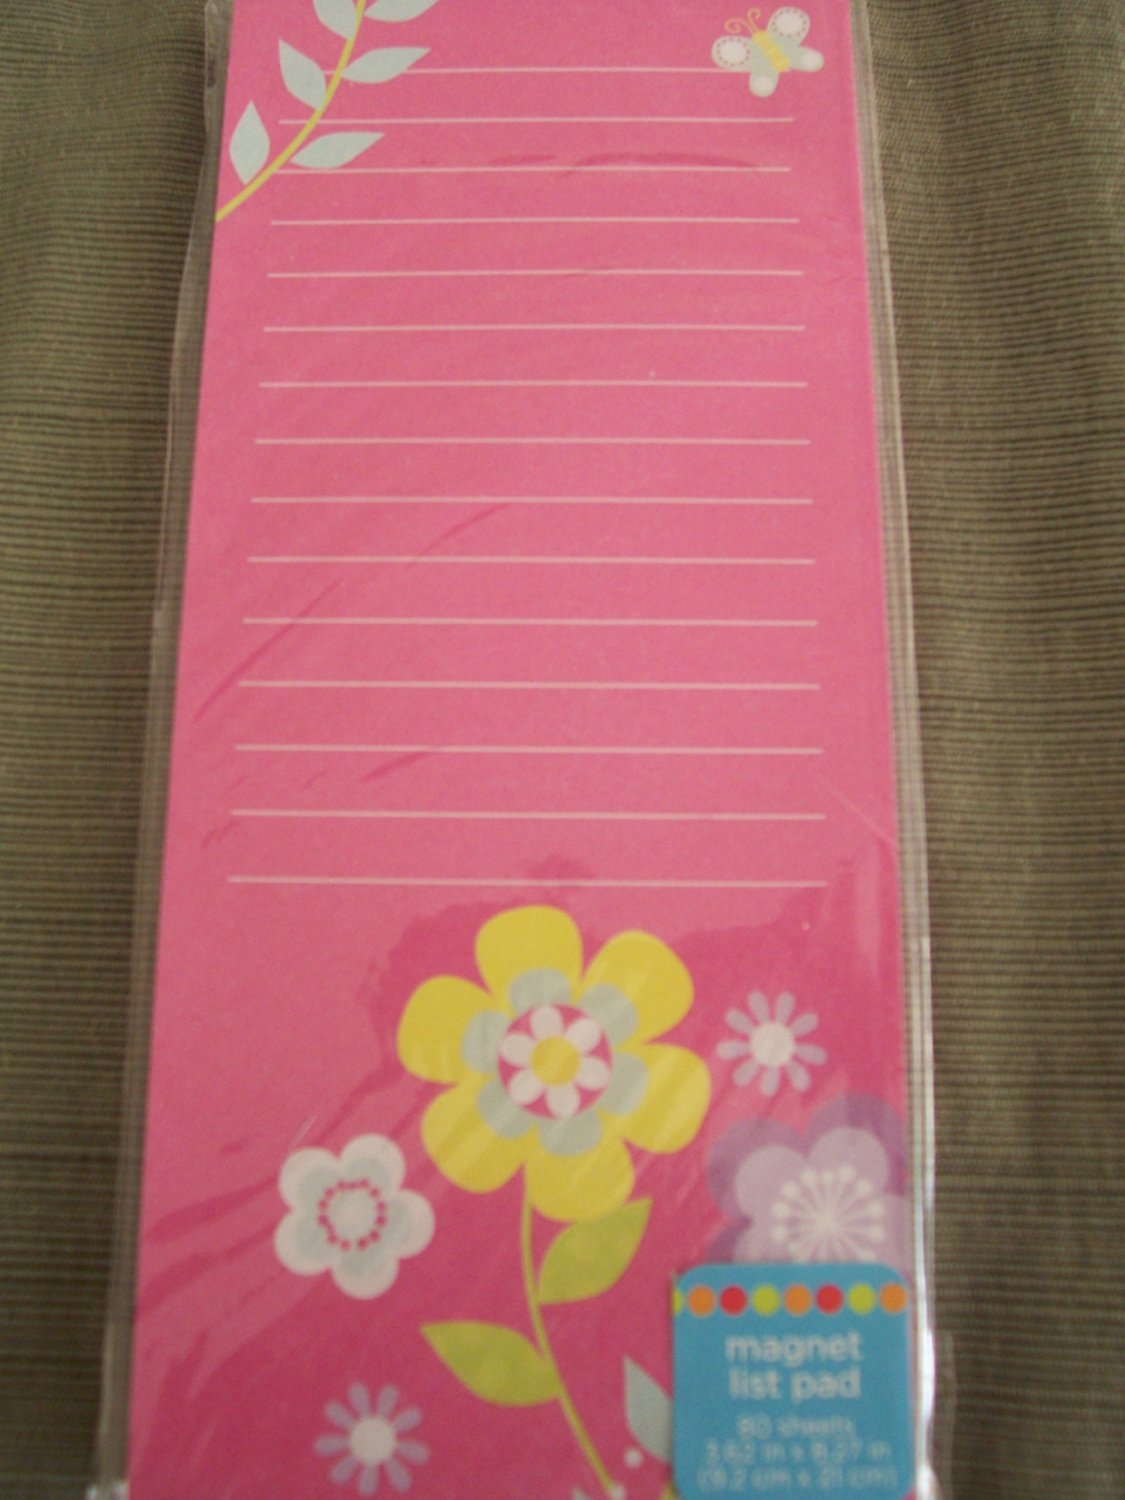 Cheap list pink flowers find list pink flowers deals on line at get quotations magnetic list pad pink with flowers mightylinksfo